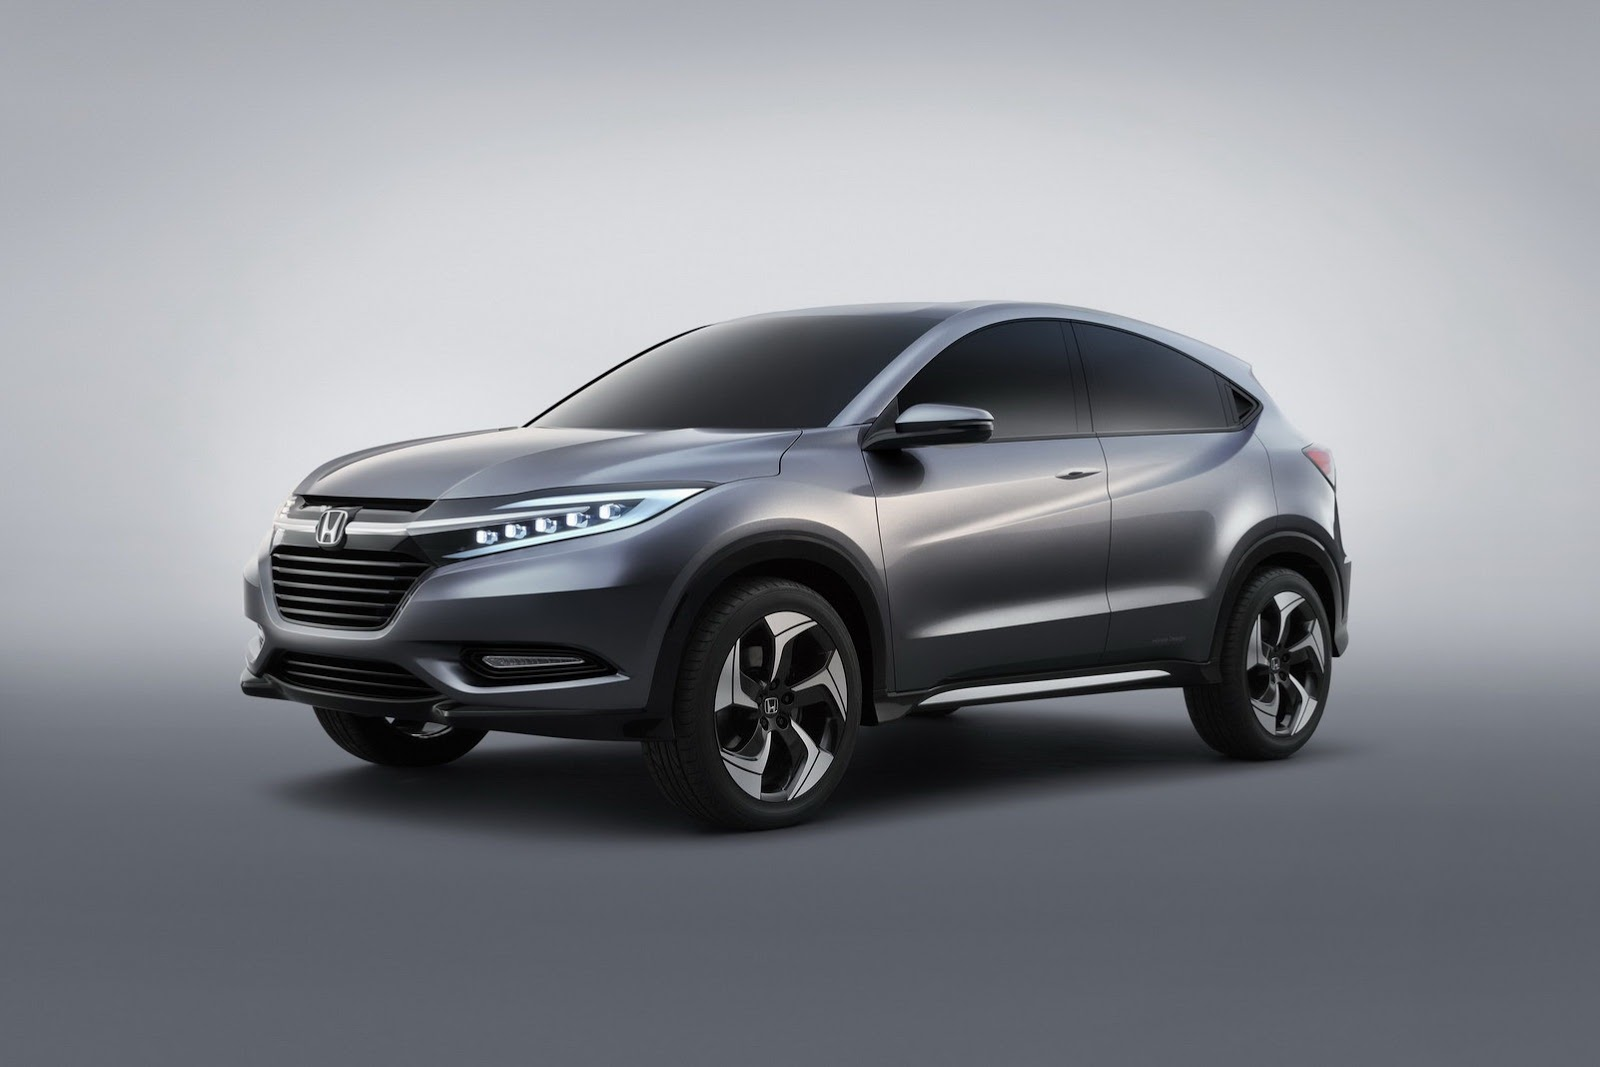 honda urban suv concept photo gallery car gallery suv crossovers autocar india. Black Bedroom Furniture Sets. Home Design Ideas